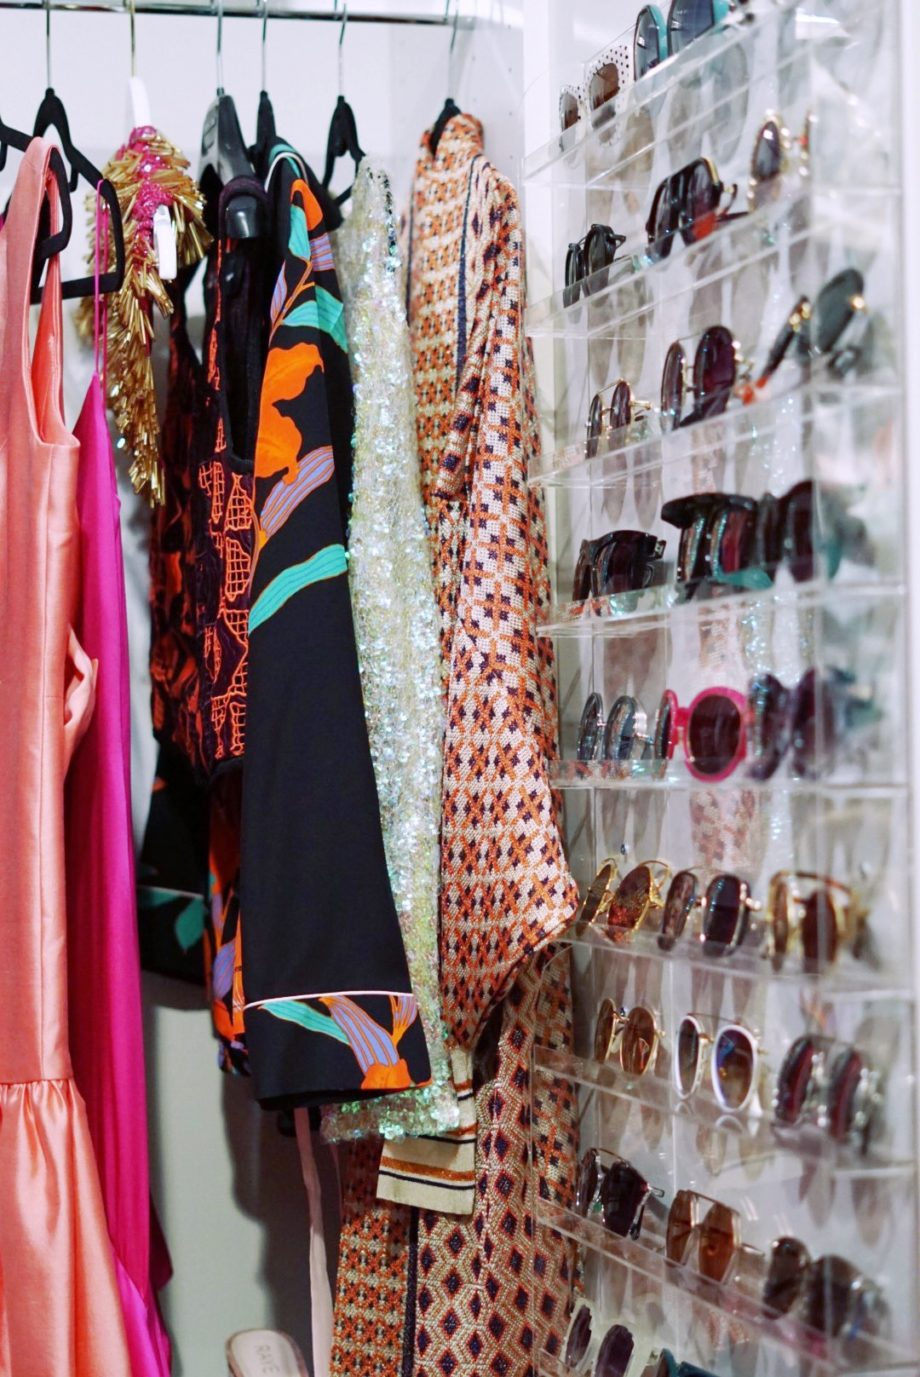 Corri McFadden shows readers how to organize their sunglasses with a fun DIY.